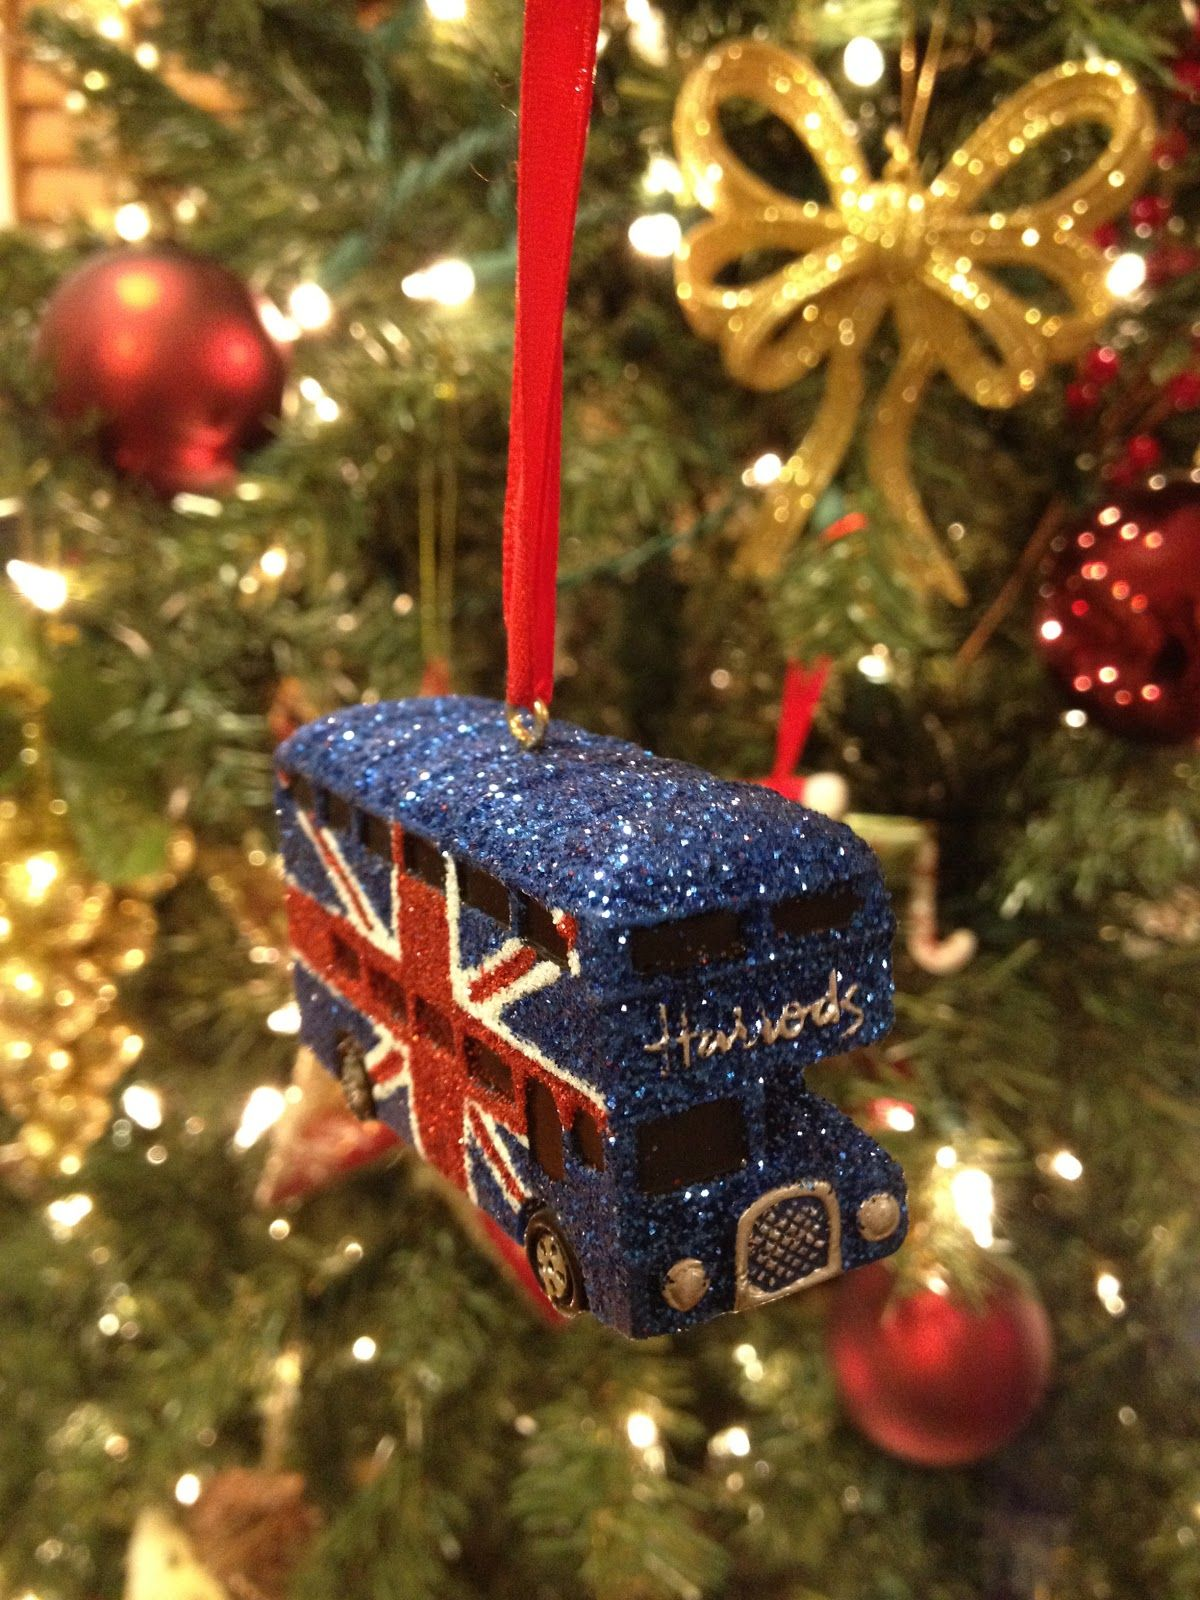 Glittery doubledecker London bus from Harrods   Pinteres